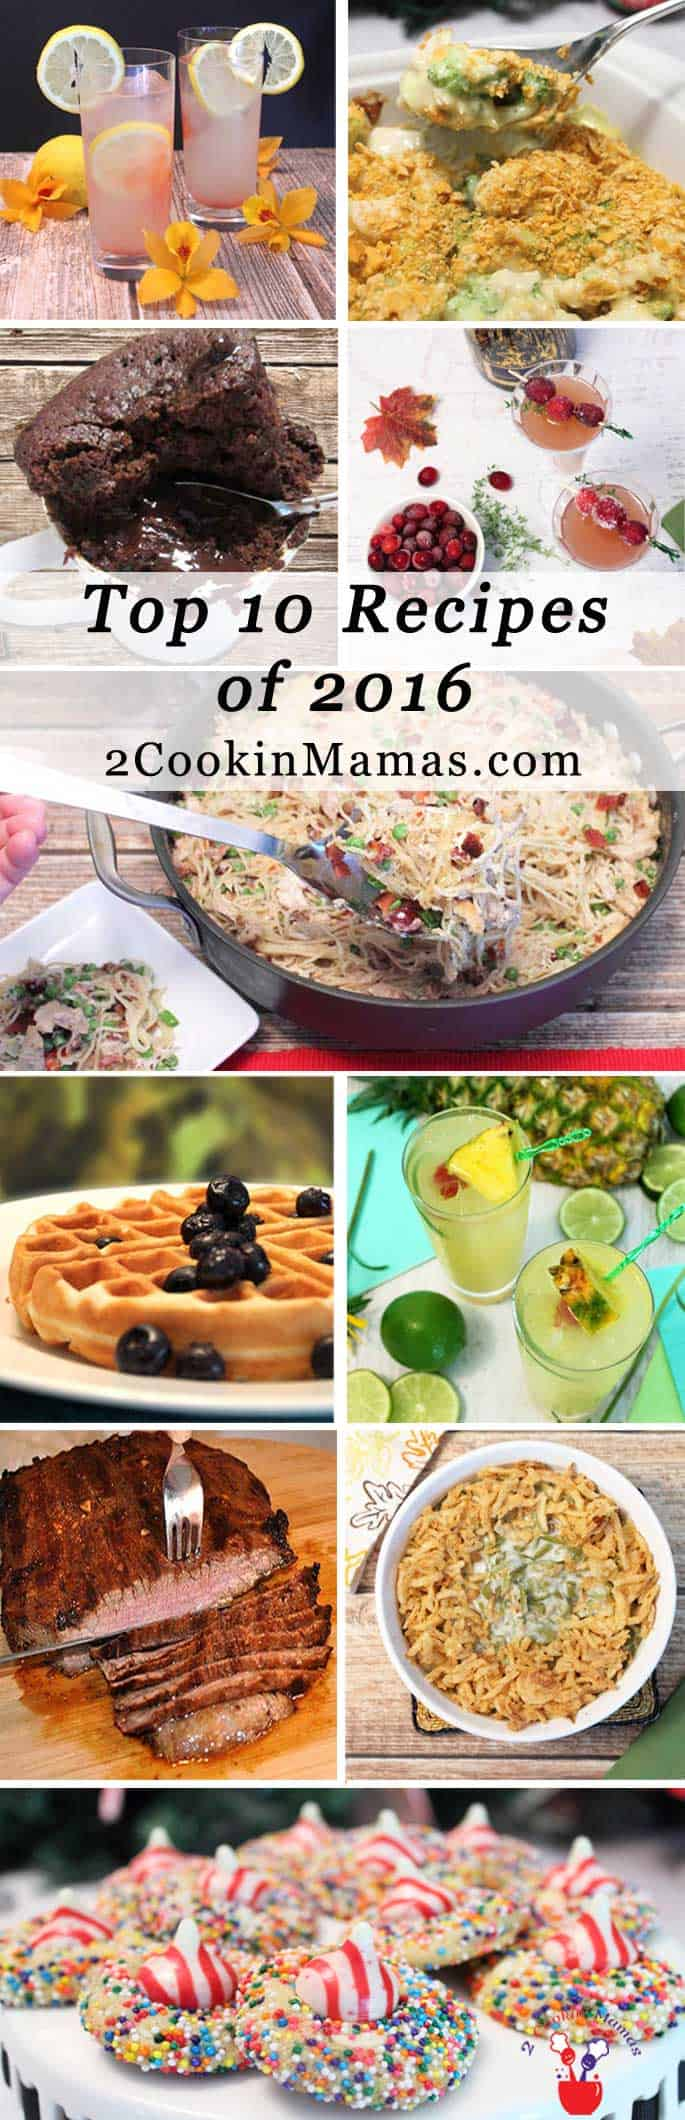 Top 10 Recipes of 2016 | 2 Cookin Mamas Our Top 10 Recipes of 2016 are both delicious and fun including cocktails, quick and easy casseroles and a few favorite sweets. #recipes